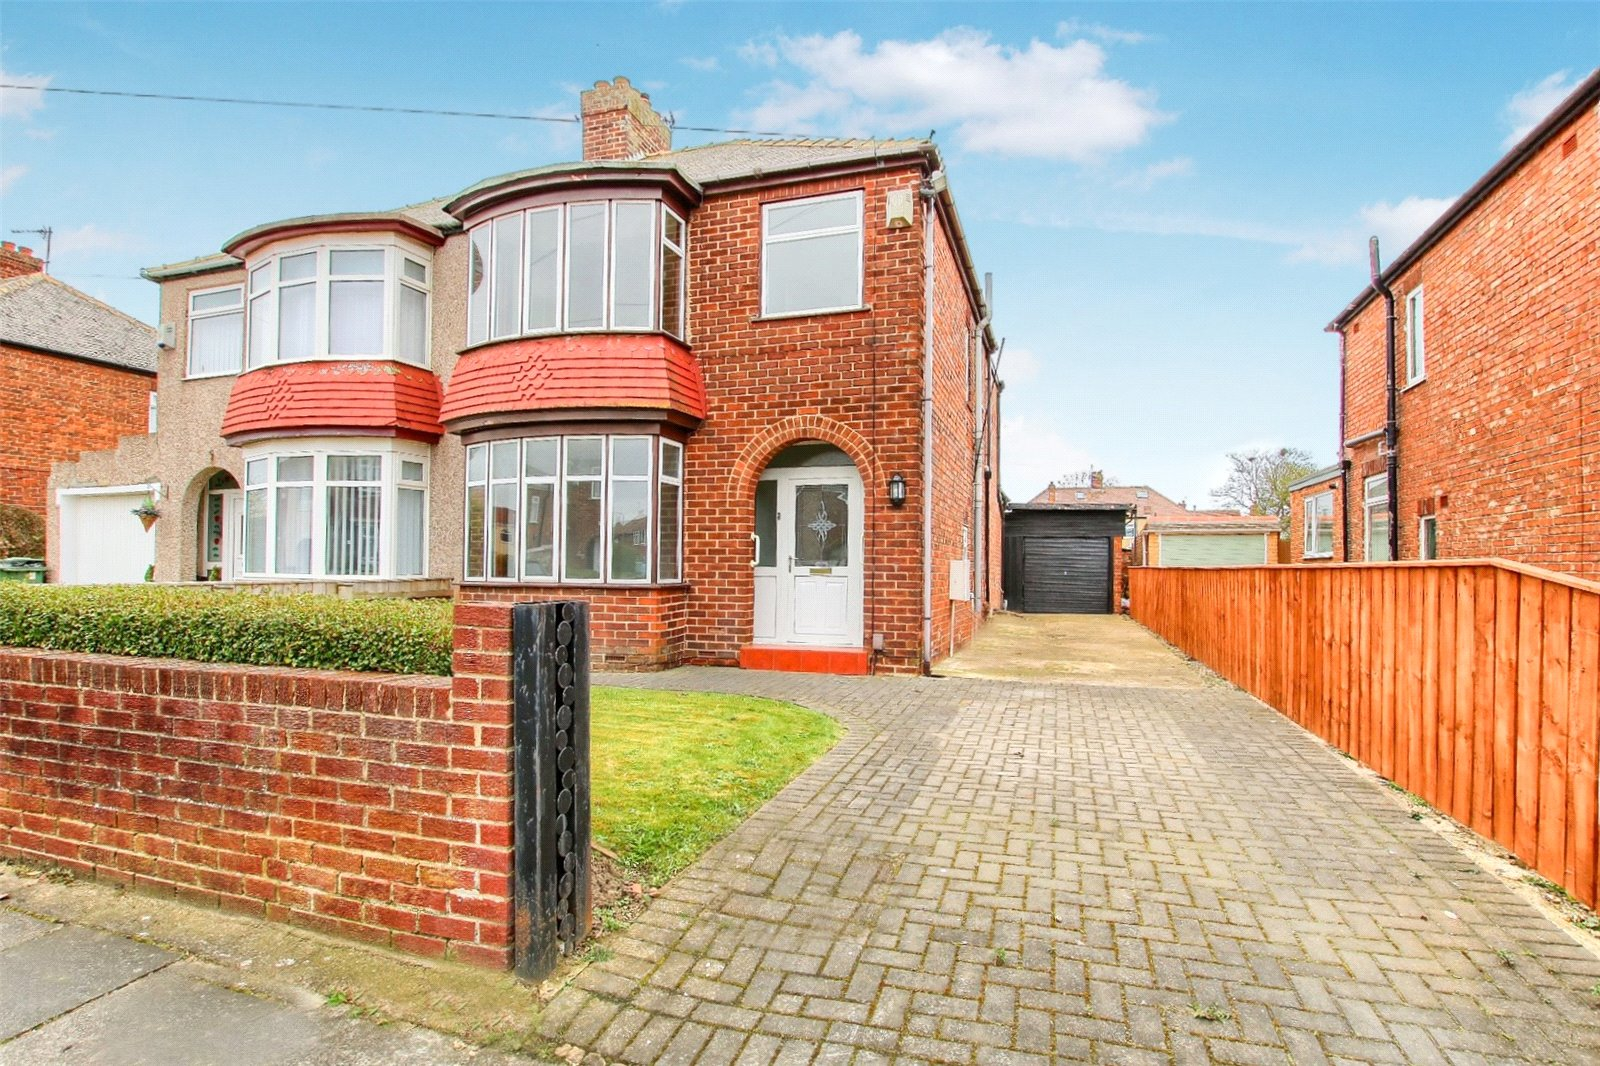 3 bed house for sale in Thames Avenue, Thornaby  - Property Image 1